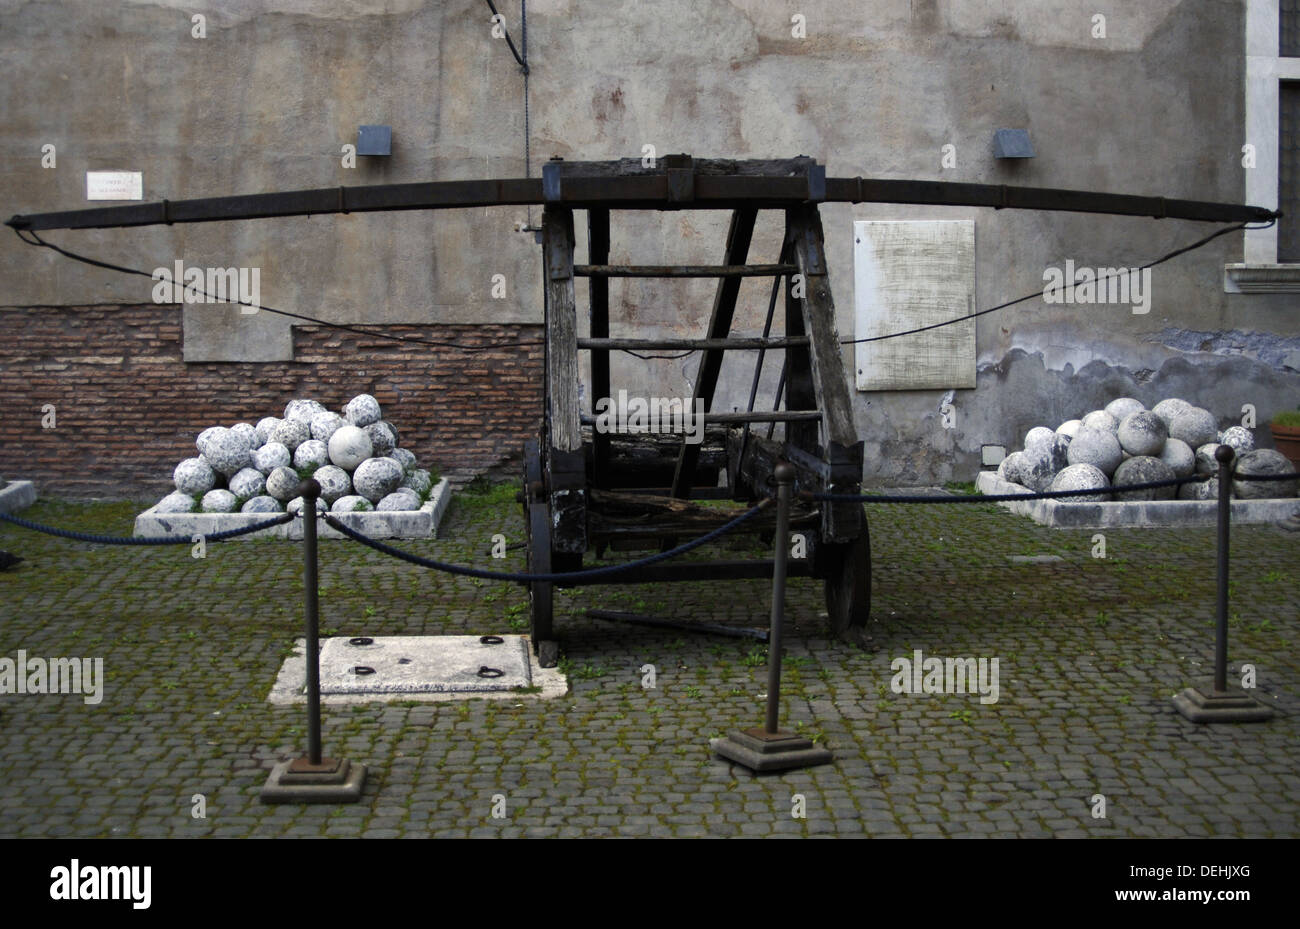 Italy. Rome. Catapult and ammunition. Castel Sant'Angelo. - Stock Image